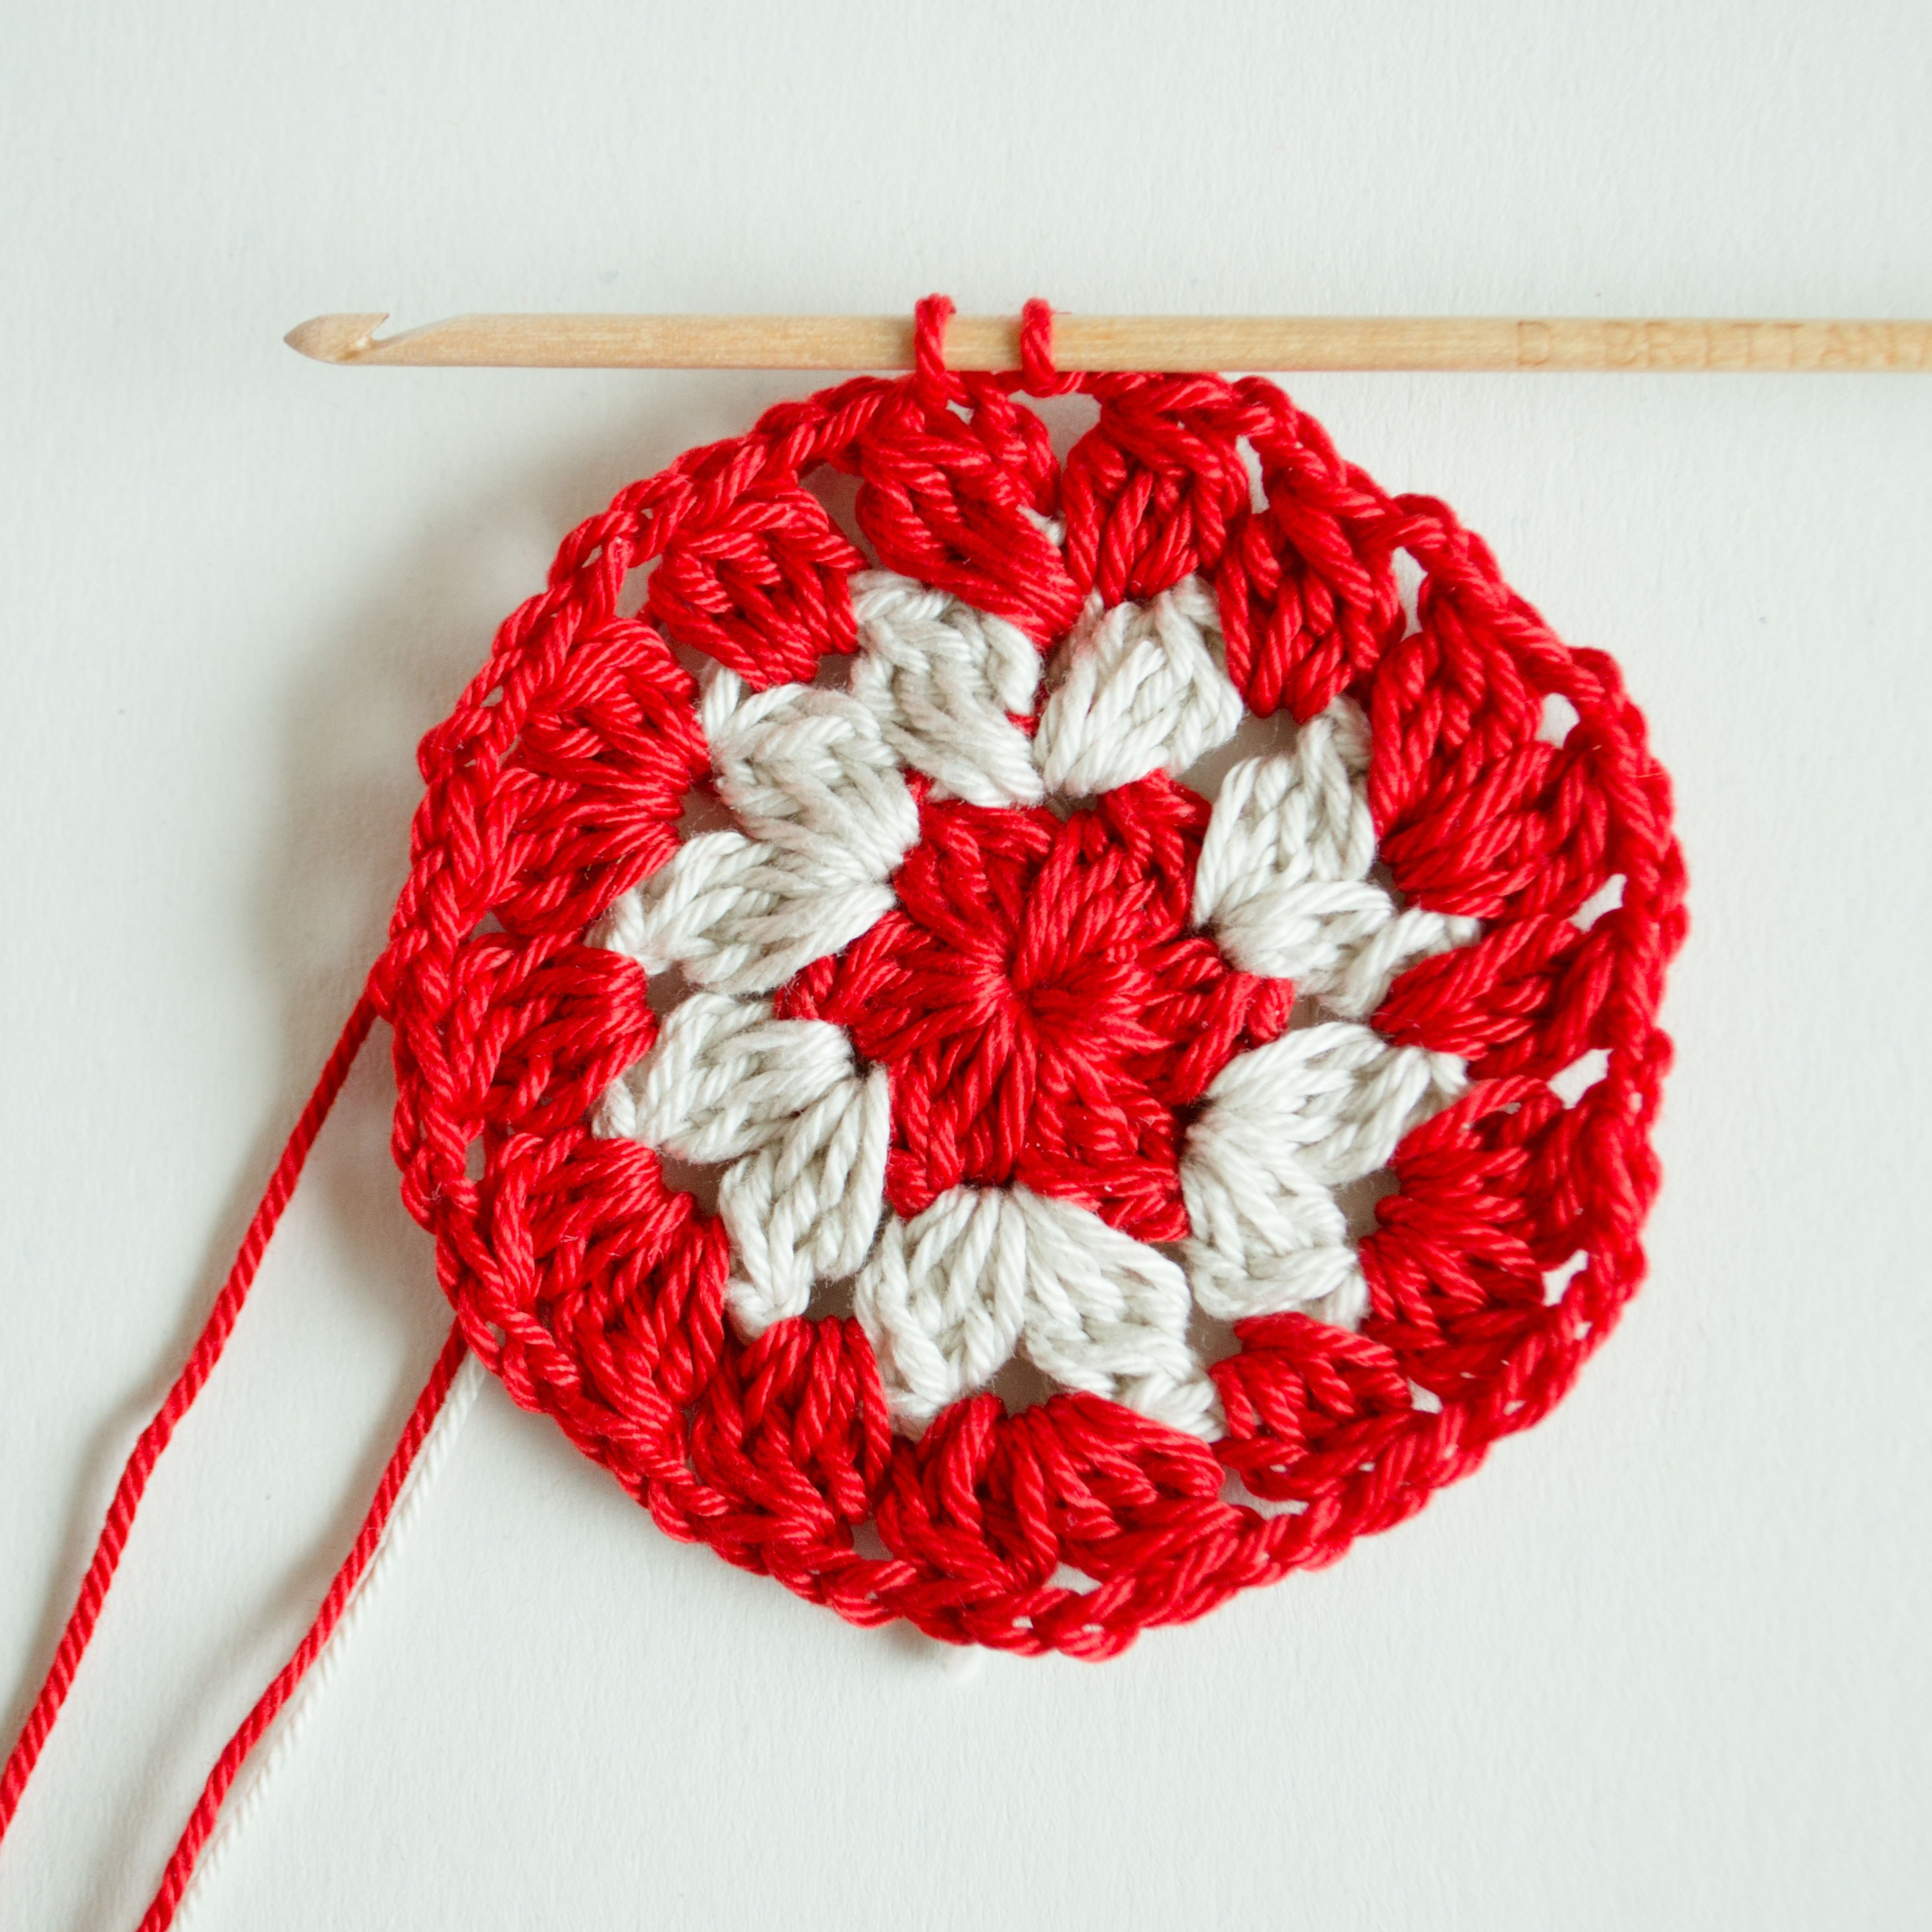 Free crochet pattern crochet coaster croby patterns free crochet pattern crochet coaster bankloansurffo Choice Image